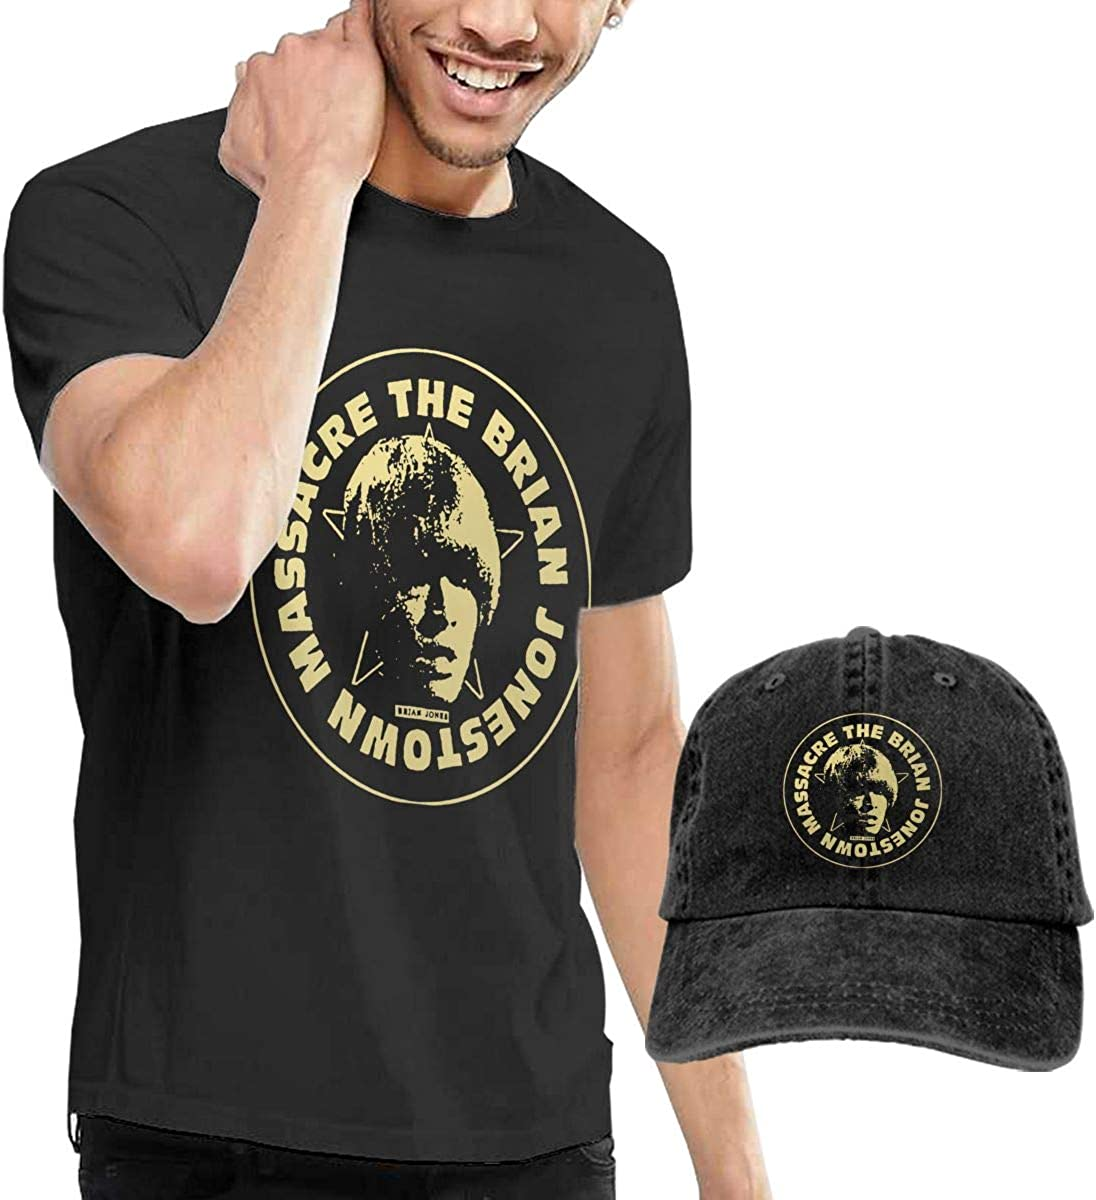 Hfusih.fhs6f789 The Brian Jonestown Massacre Logo Adult Cap Adjustable Cowboys Hats Baseball Cap M Black